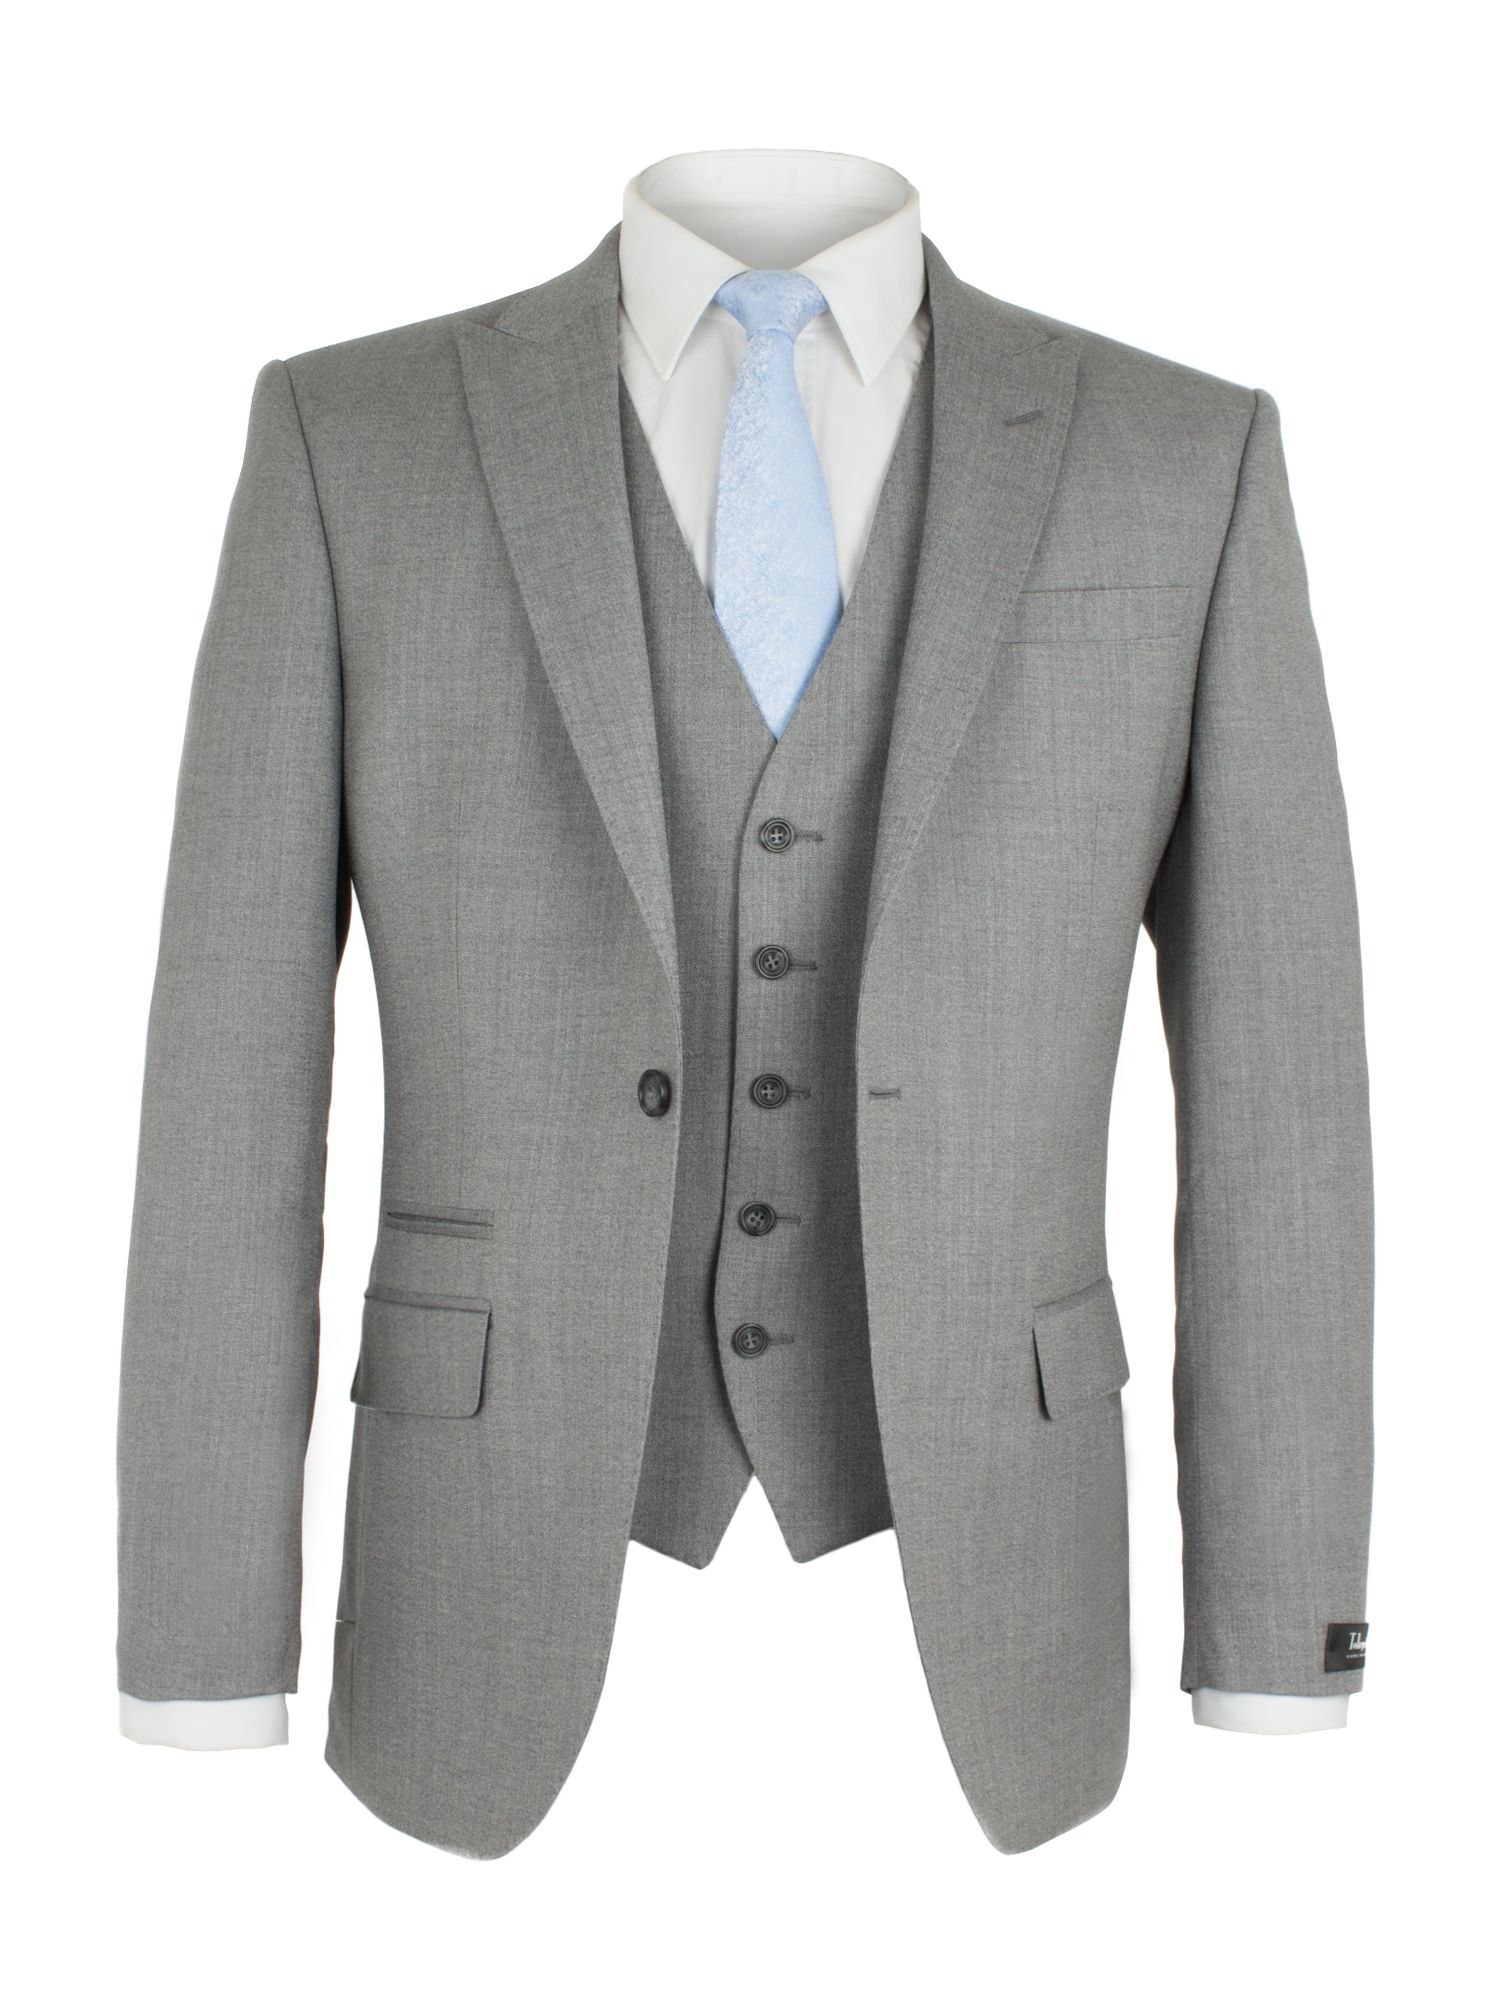 Alexandre of England Men's Alexandre of England Lothbury Grey Crepe Jacket, Grey